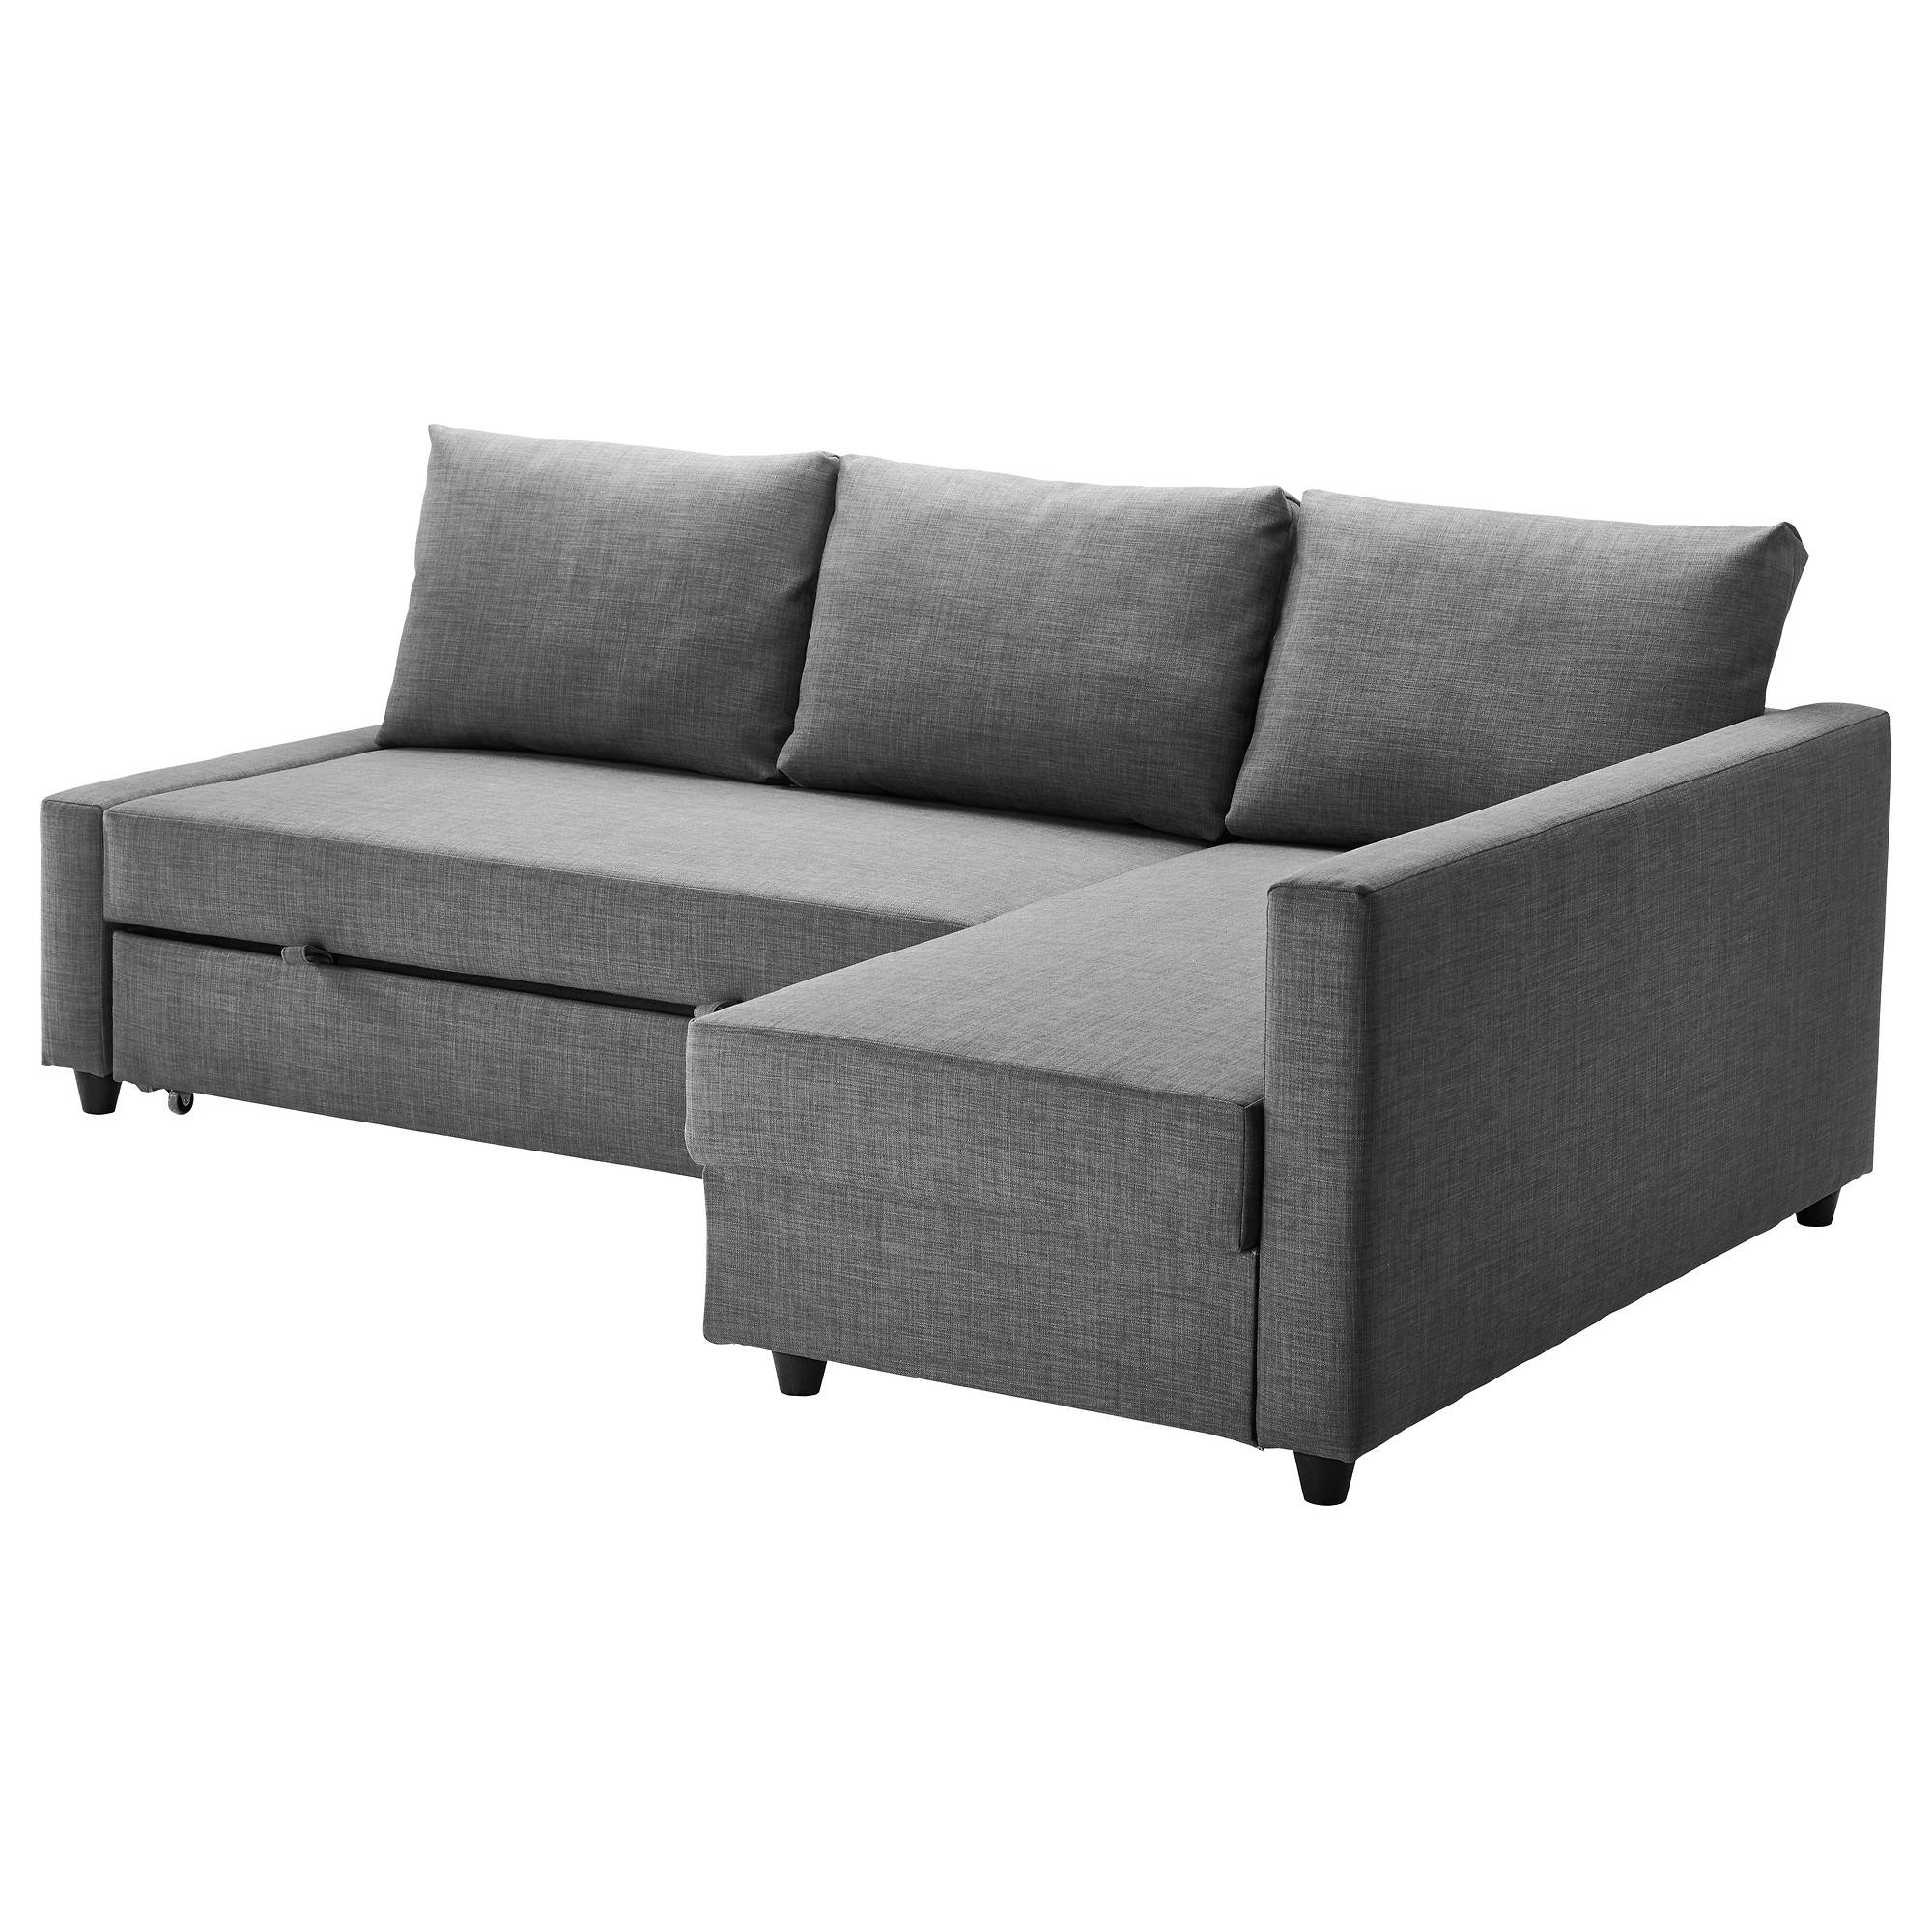 Friheten Corner Sofa-Bed With Storage Skiftebo Dark Grey - Ikea intended for Storage Sofa Beds (Image 9 of 30)